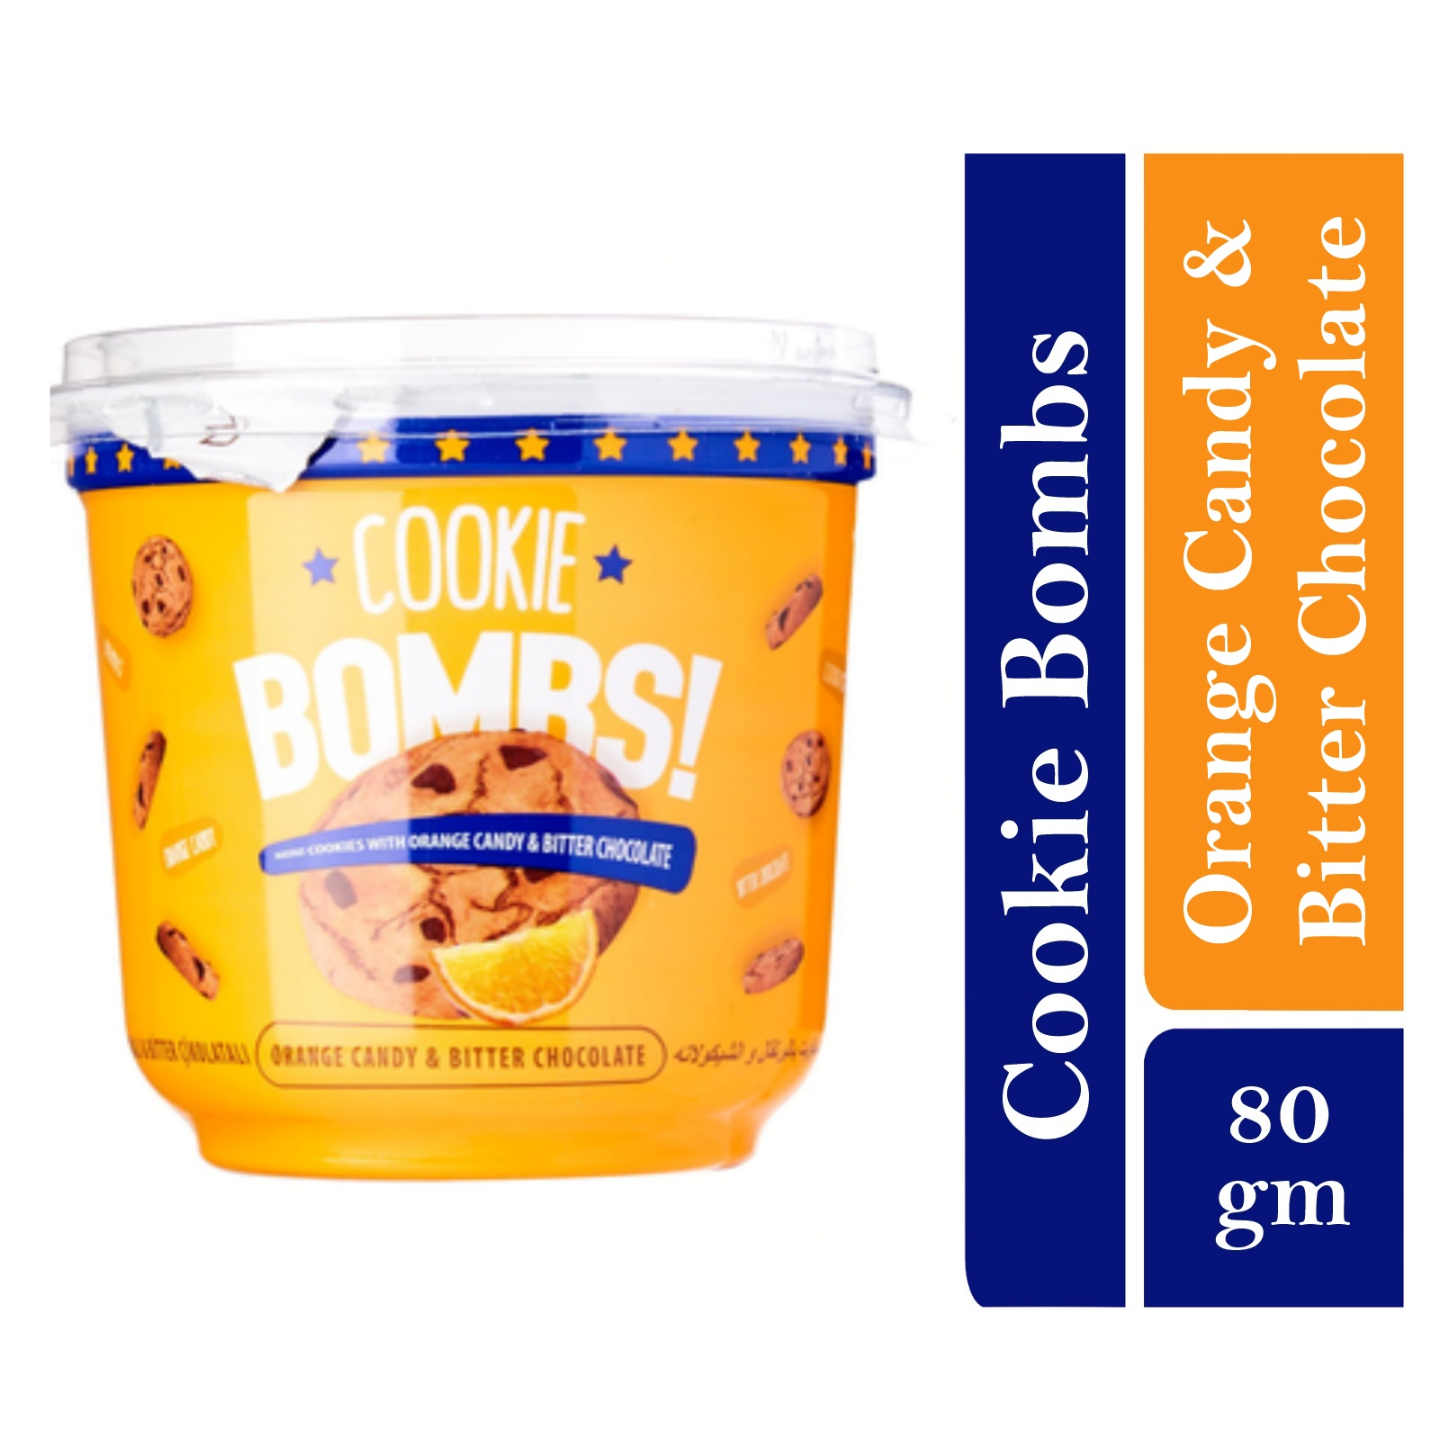 Bombs Mini Cookies with Orange Candy & Bitter Chocolate Flavor